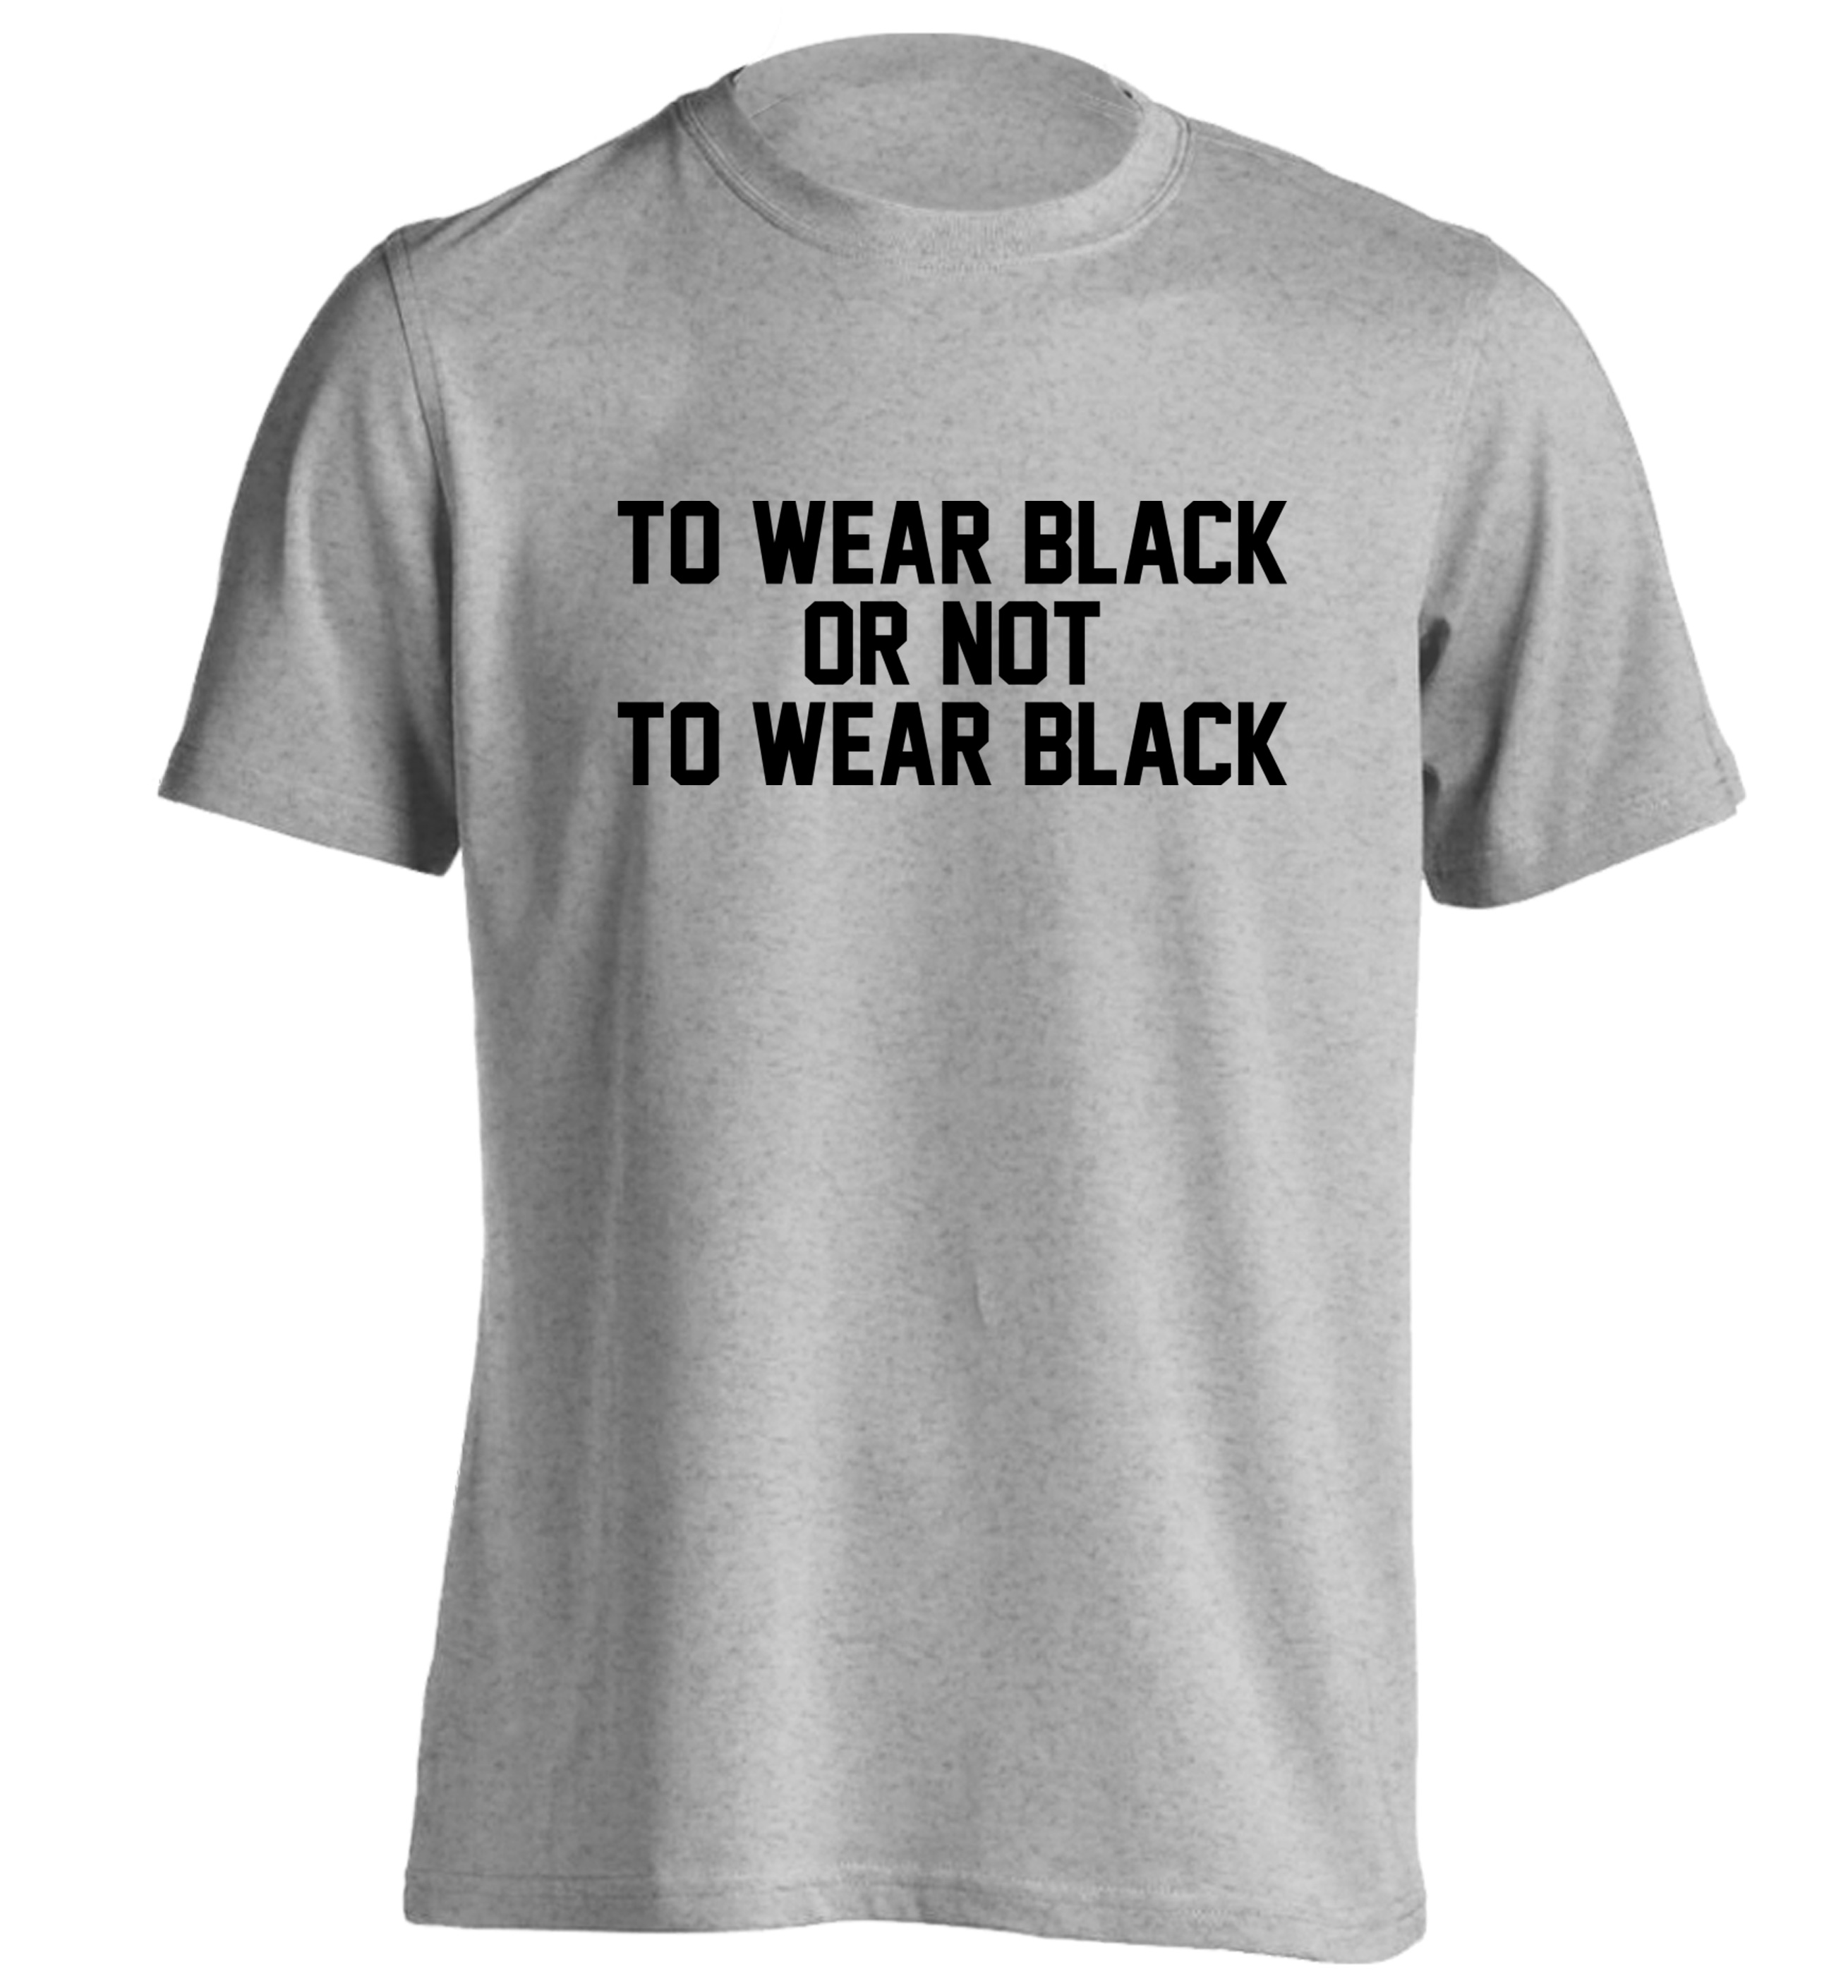 Black t shirt grunge -  To Wear Black Or Not To Wear Black T Shirt Grunge Tumblr Instagram Hipster Slogan Funny